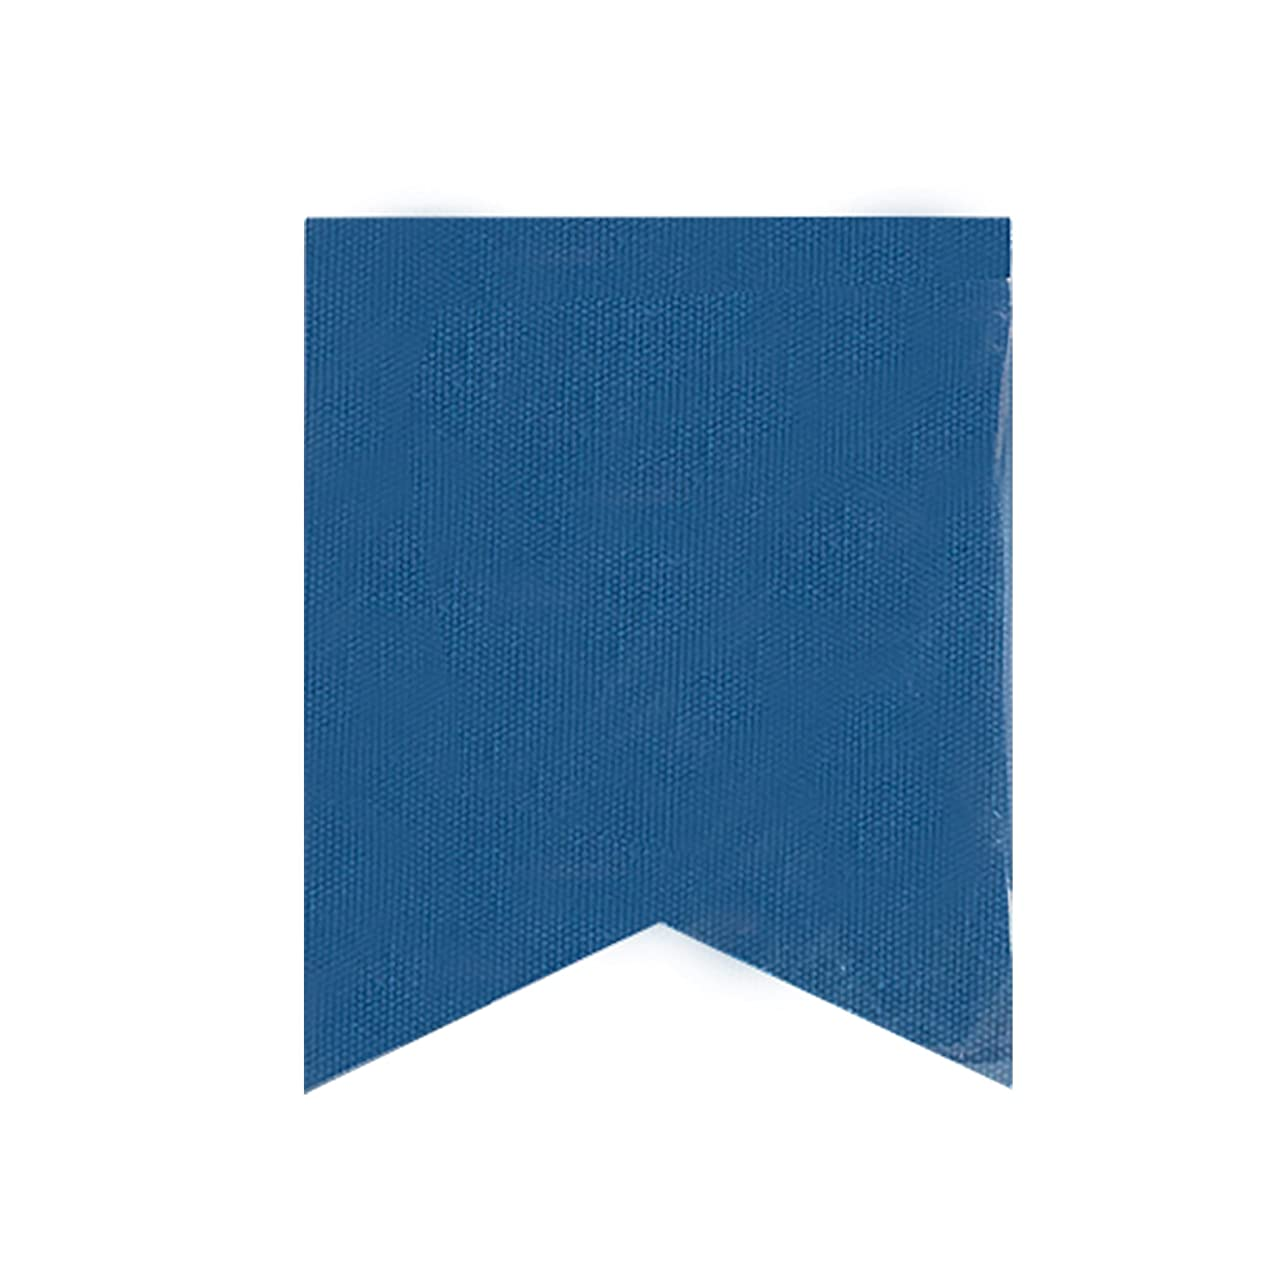 Darice Fishtail Design Canvas Banner Flags in Navy